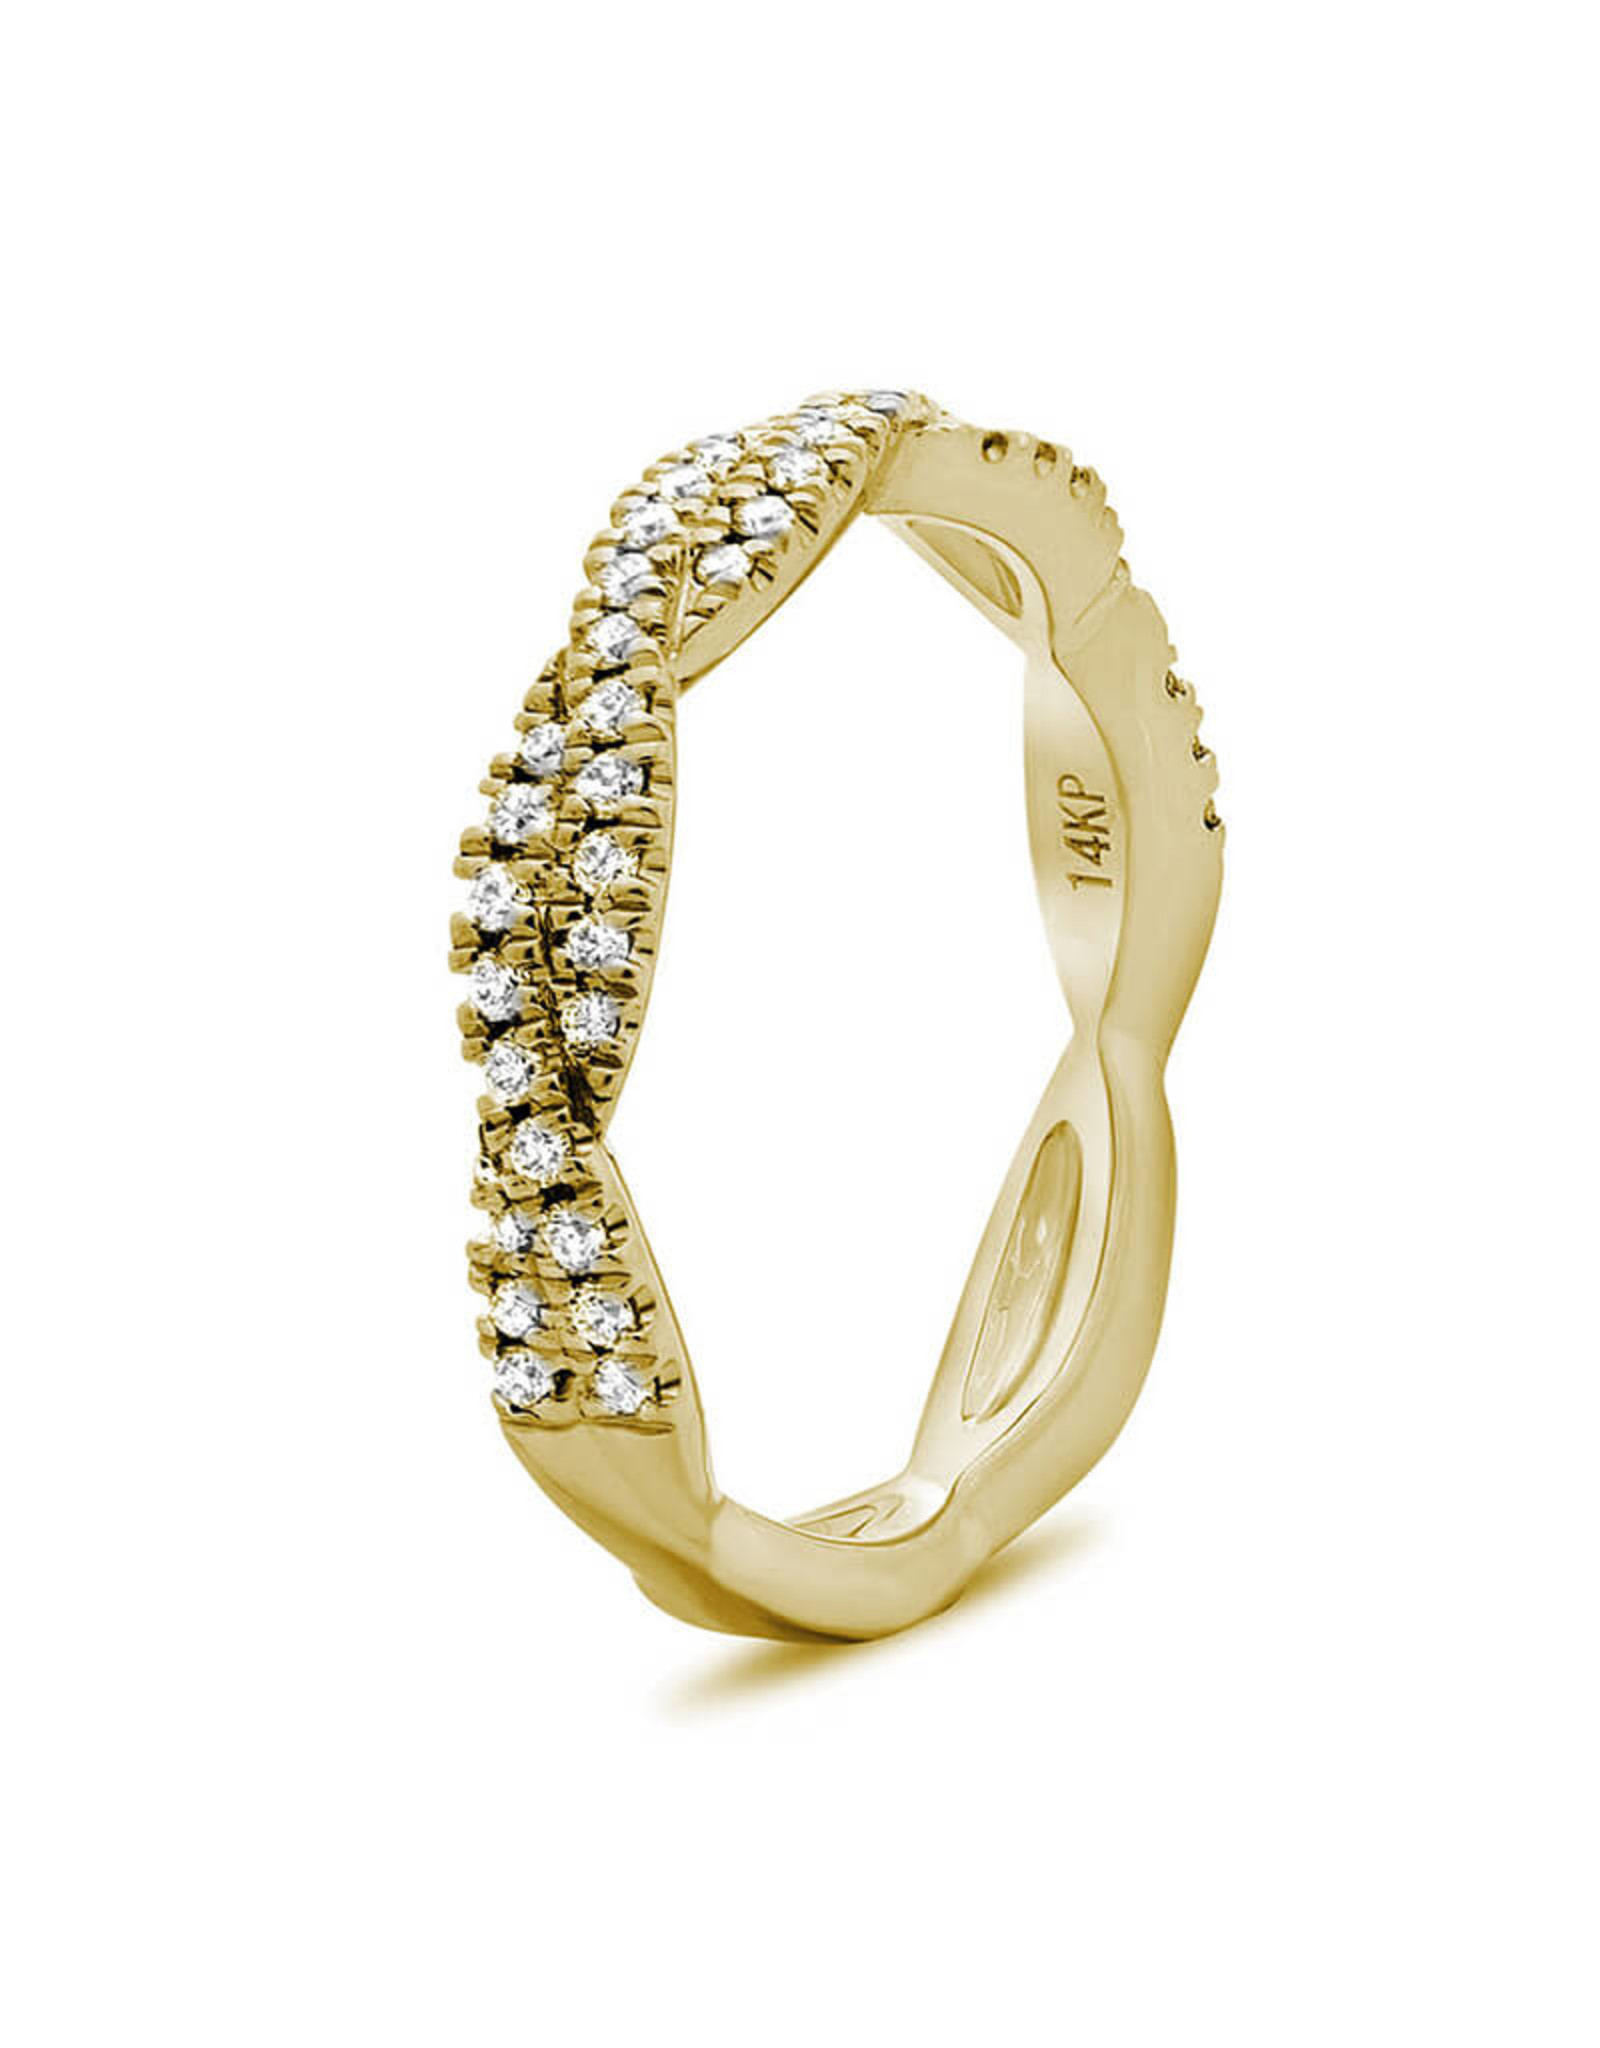 14K Yellow Gold Twisted Diamond Infinity Ring, D: 0.25ct